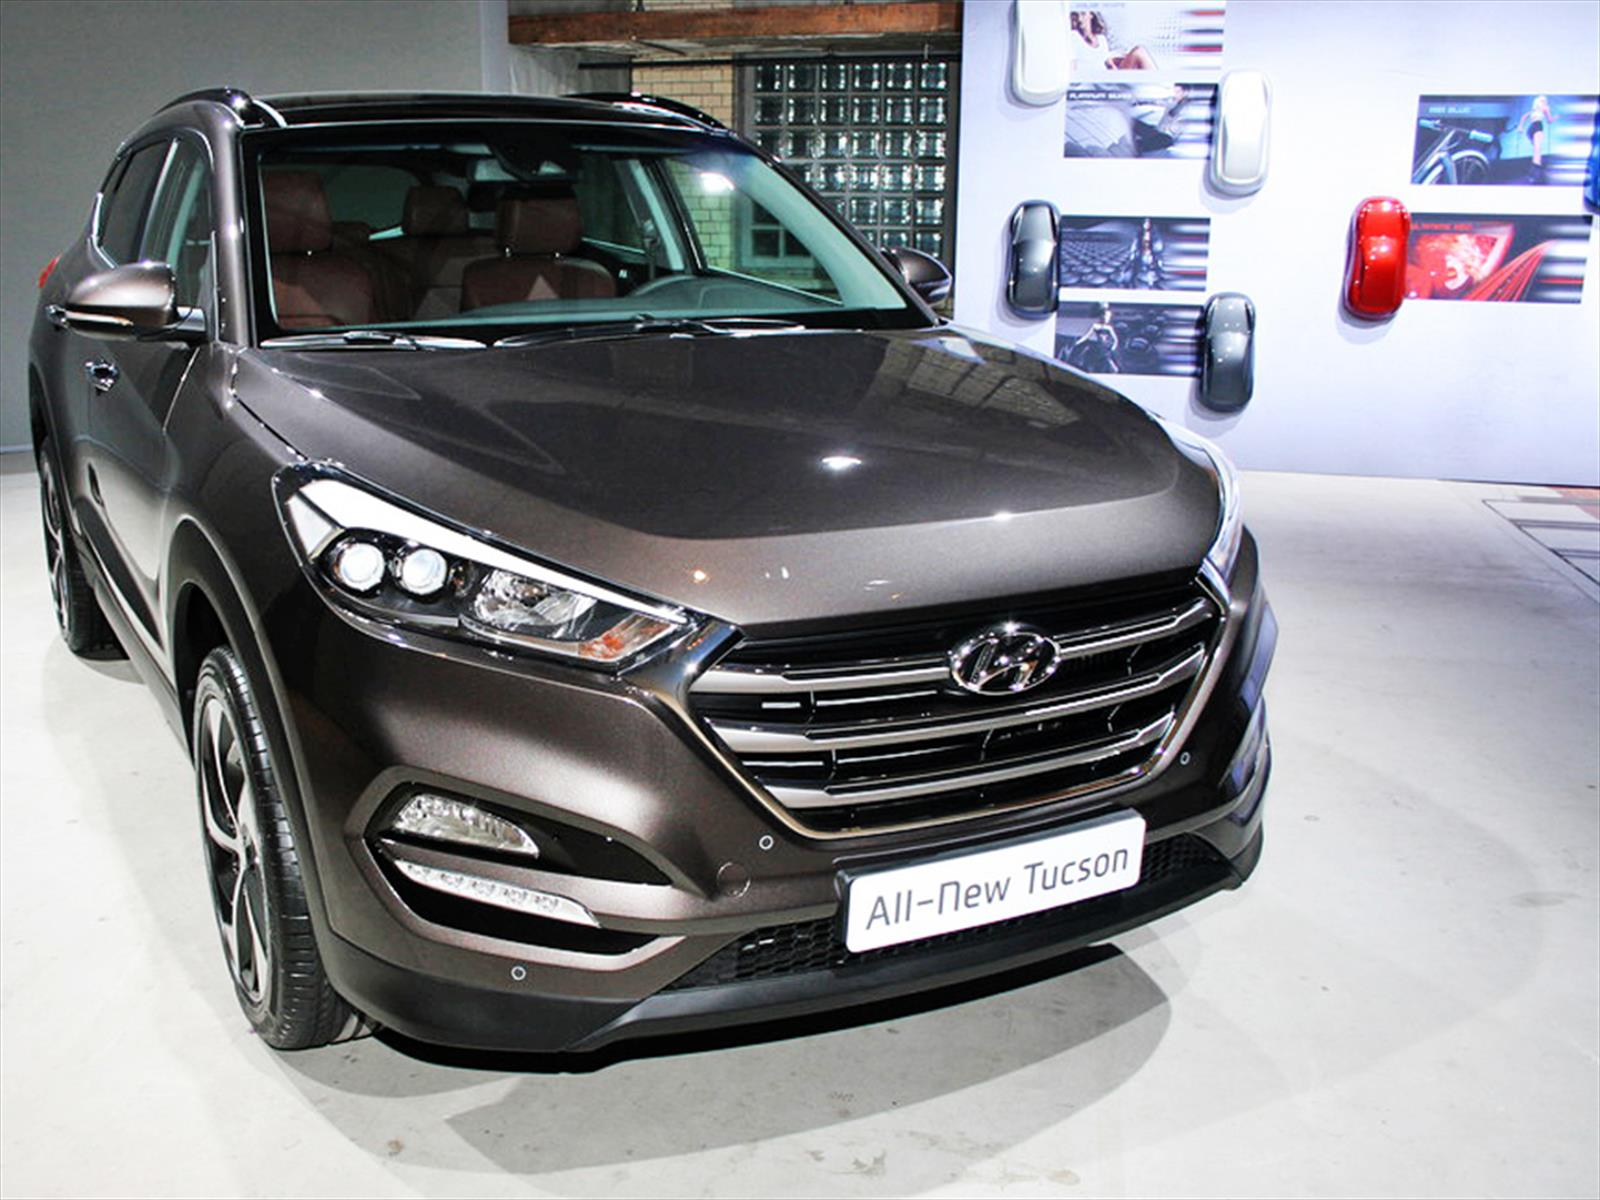 Hyundai Tuscan 2015 Manual | 2017 - 2018 Best Cars Reviews